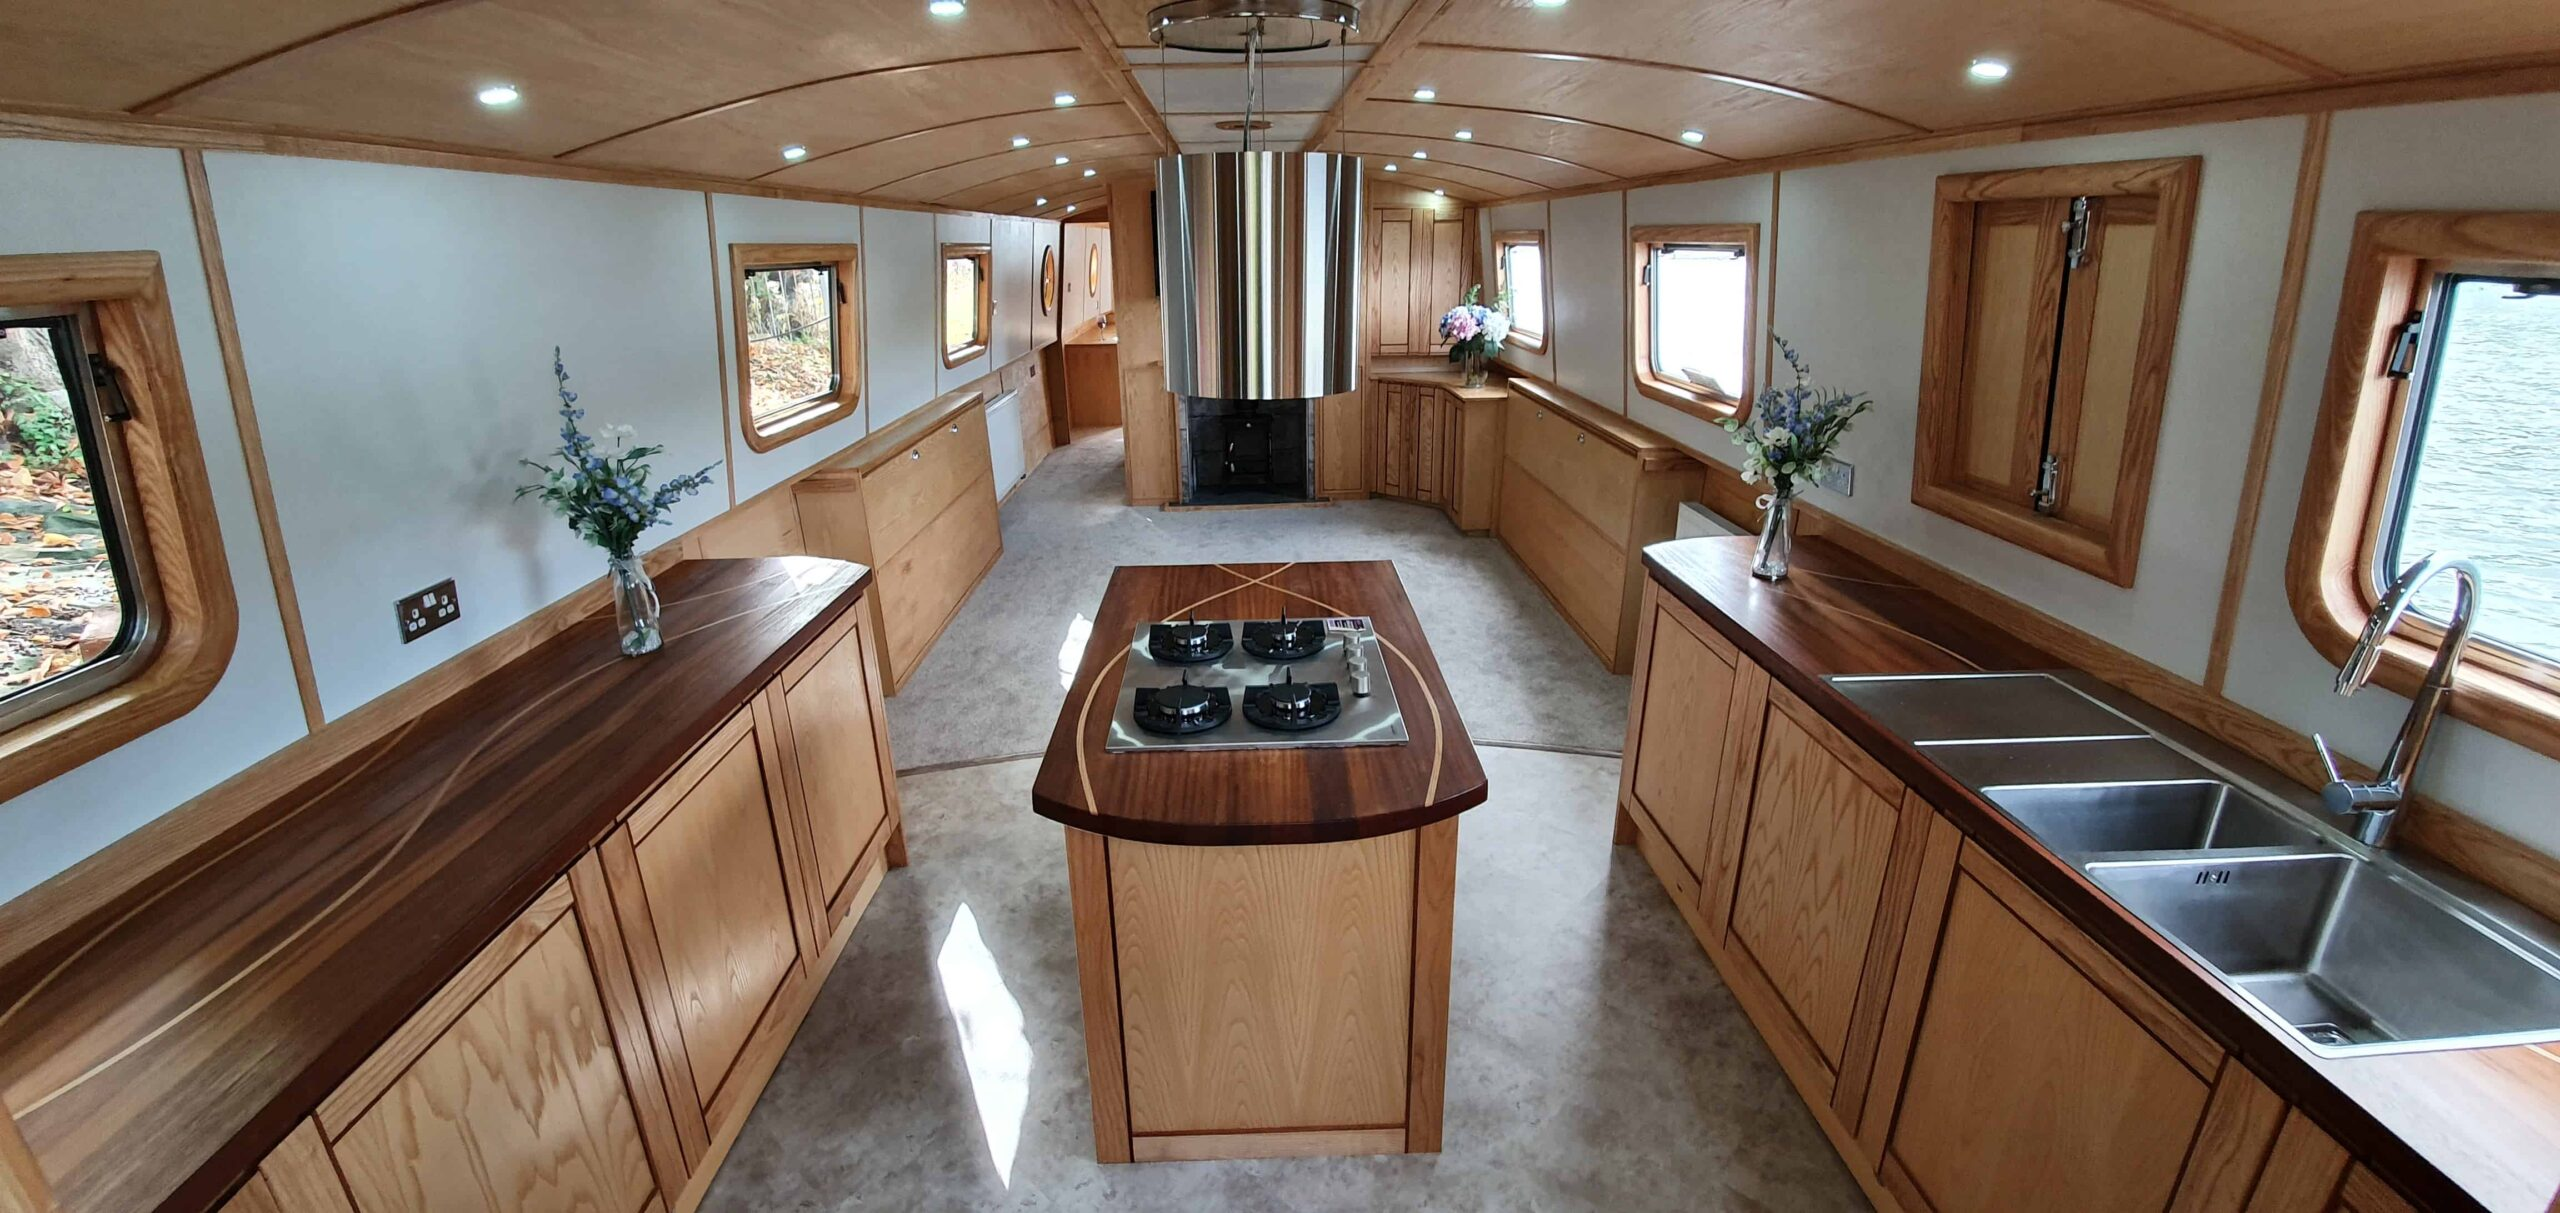 One of Style's completed boat restorations